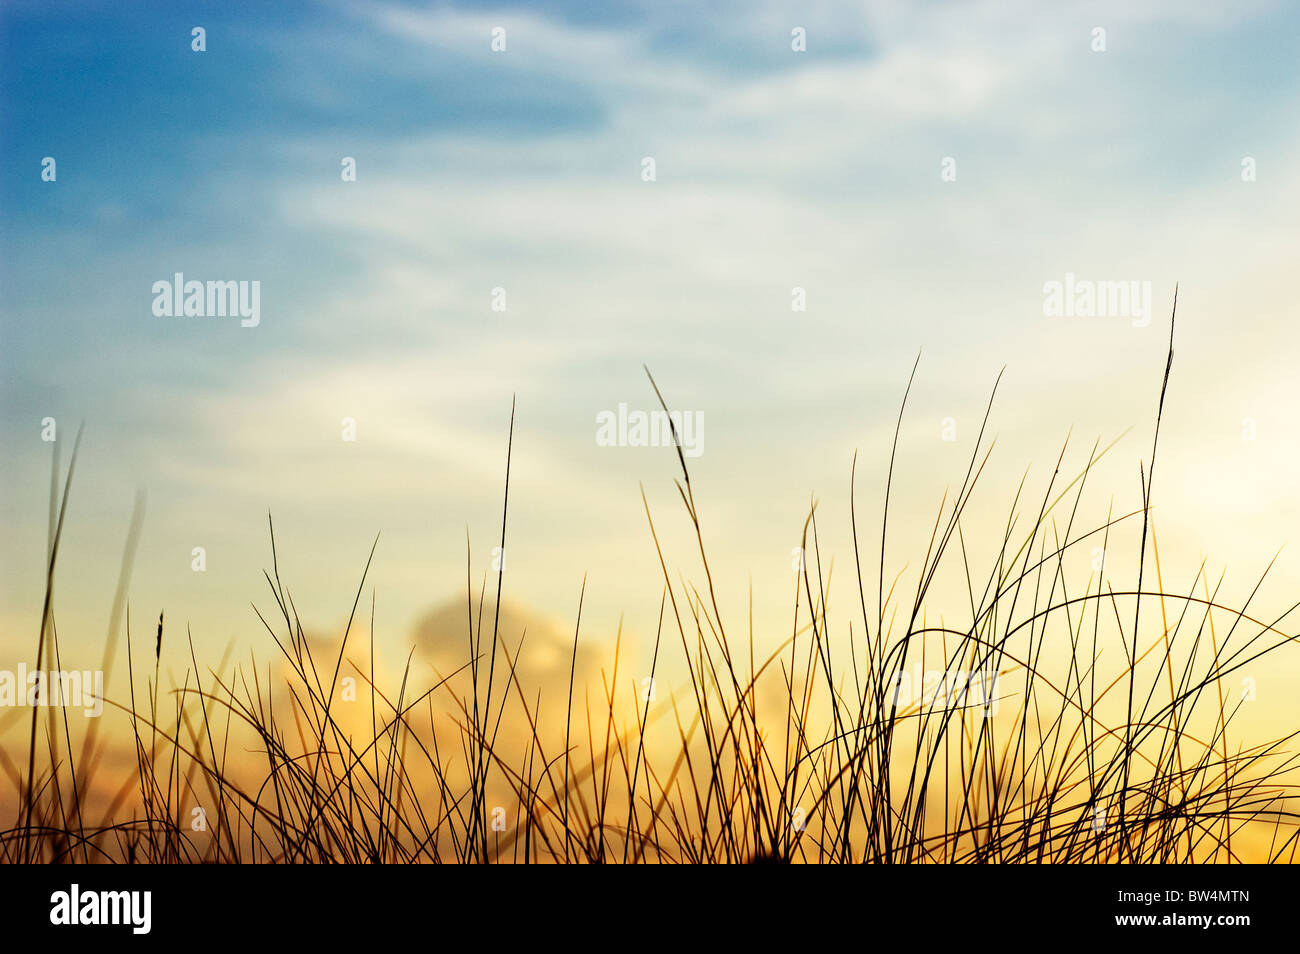 Silhouette of beach grass with a colorful sunset in the background. Gulf Coast, Florida. - Stock Image